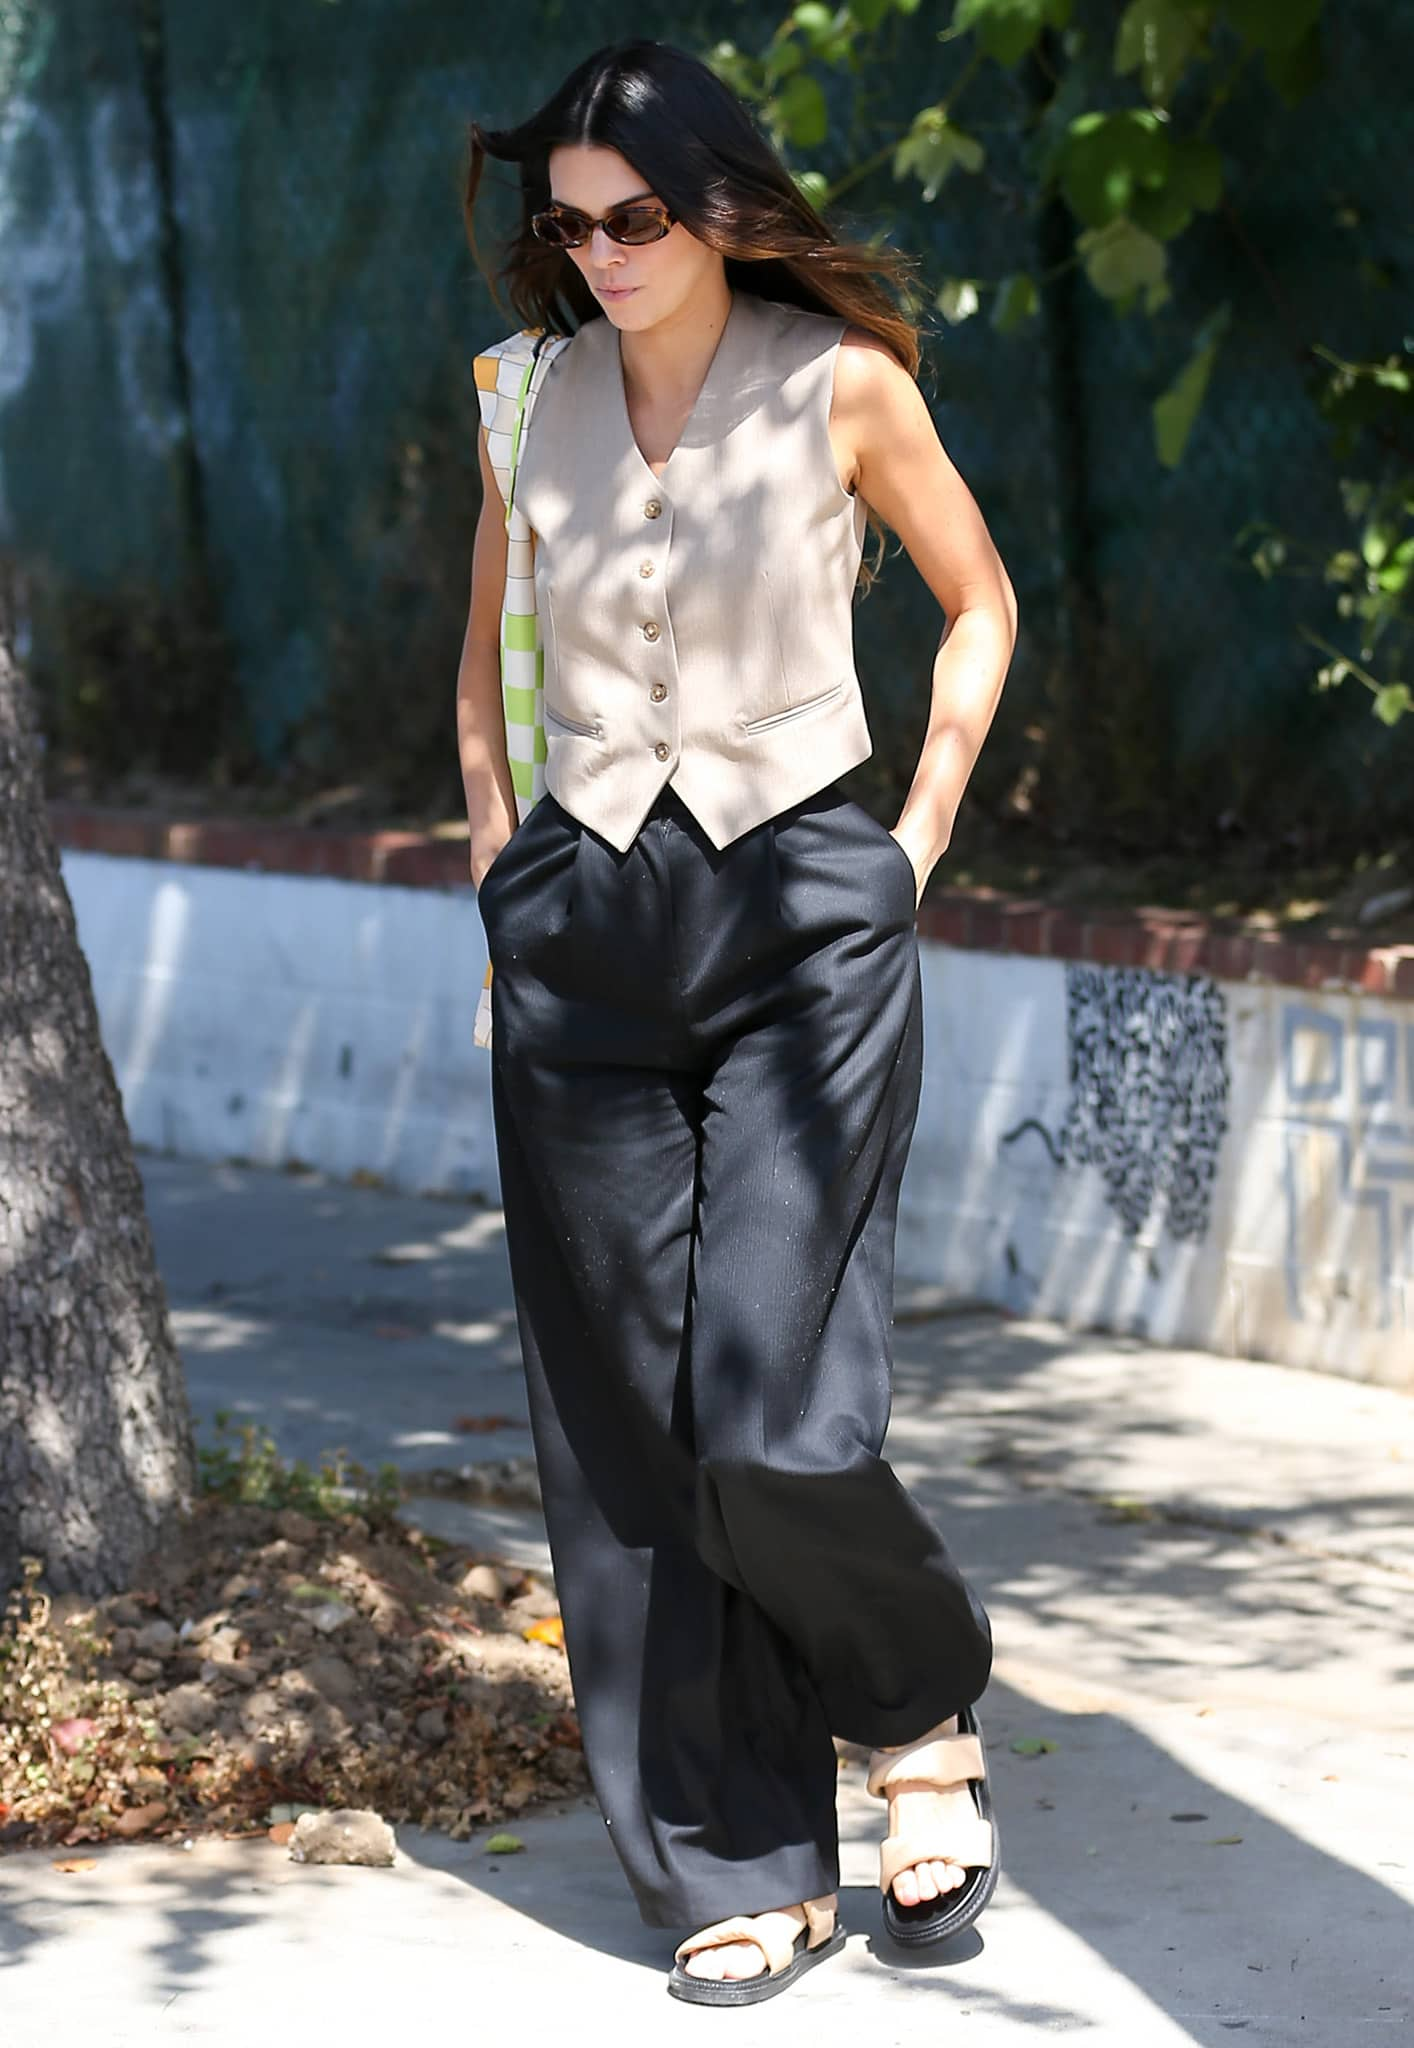 Kendall Jenner channels Chandler Bing while out for lunch in Los Angeles on May 26, 2021